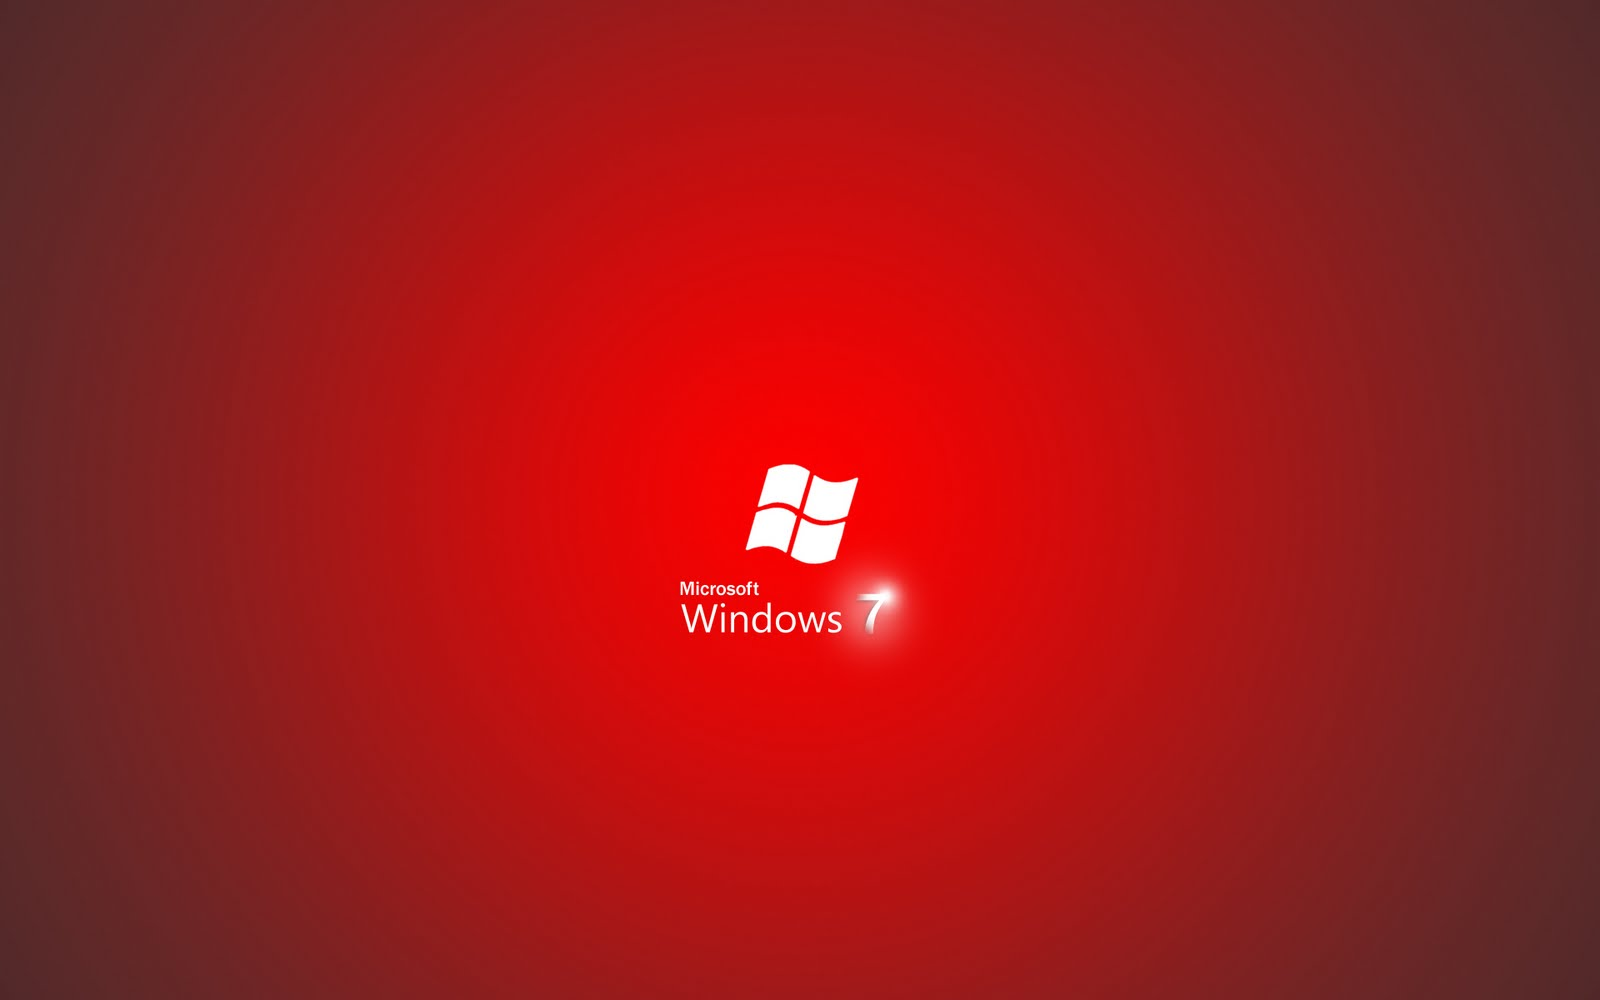 Windows 7 Red Edition High Definition Backgrounds - Windows 7 Red Background , HD Wallpaper & Backgrounds